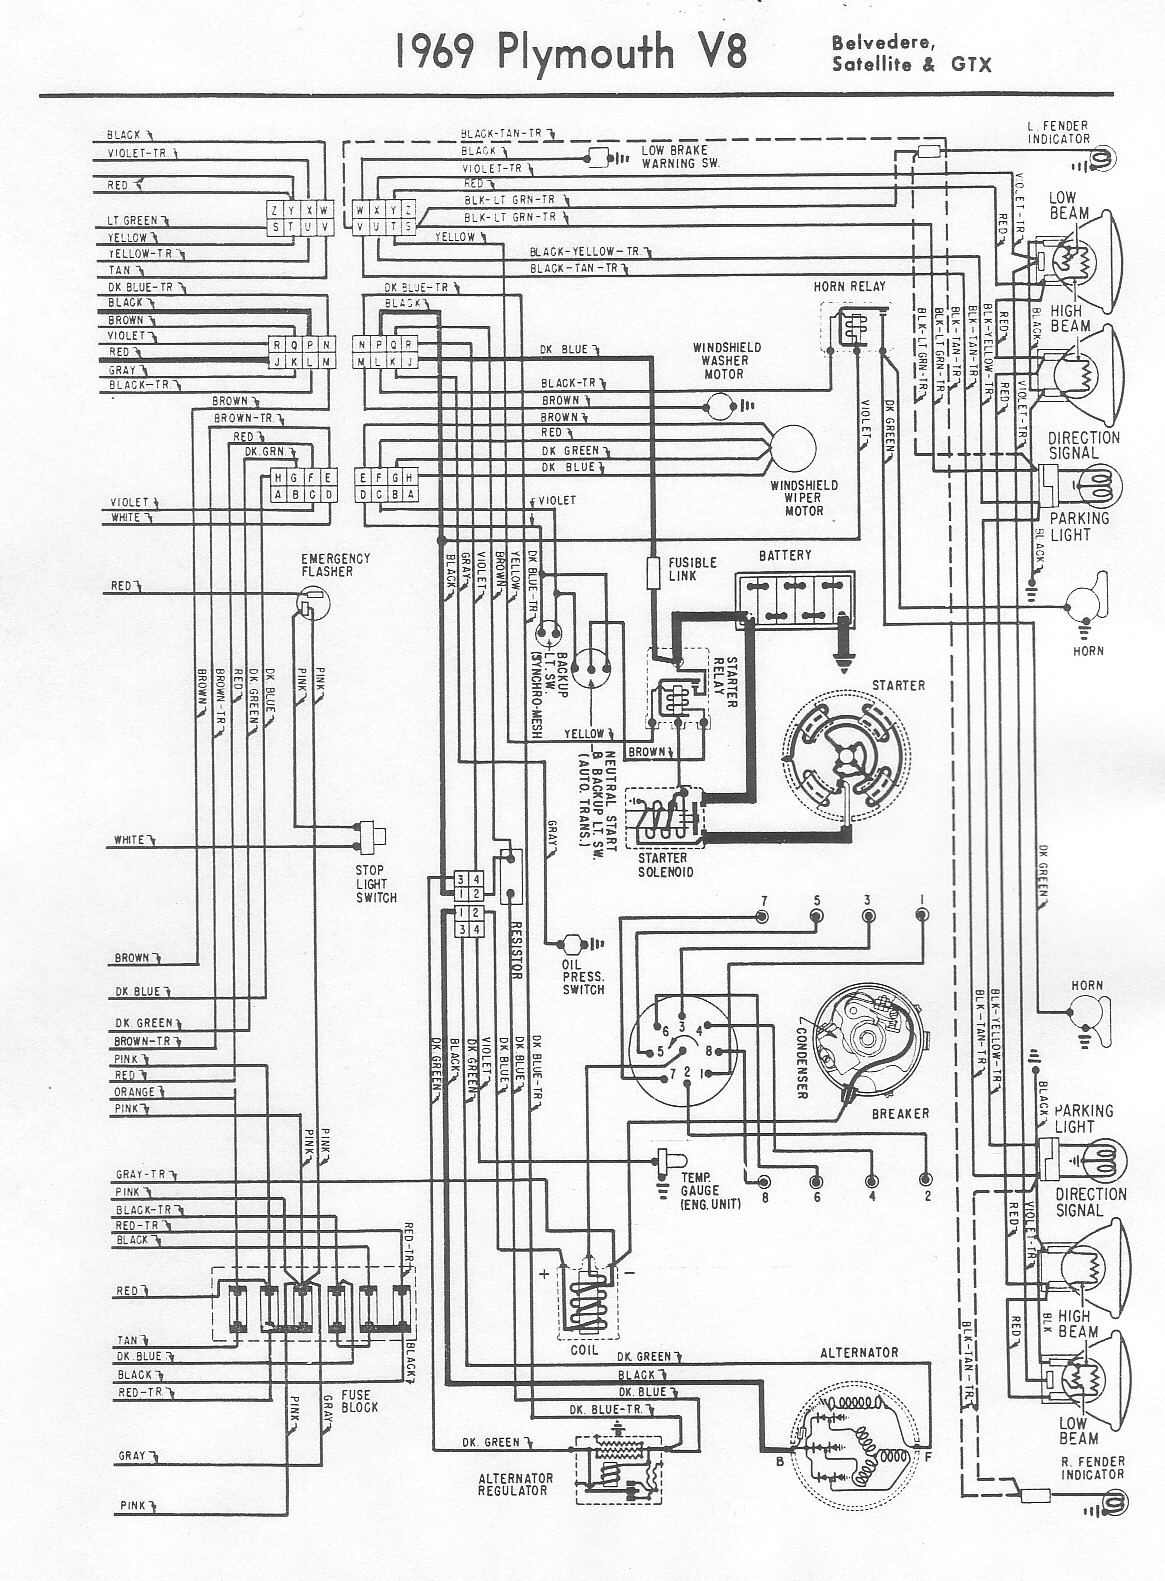 Challenger Wiring Diagram on challenger engine diagram, challenger cable, challenger parts diagram, challenger headlights, challenger circuit breaker,